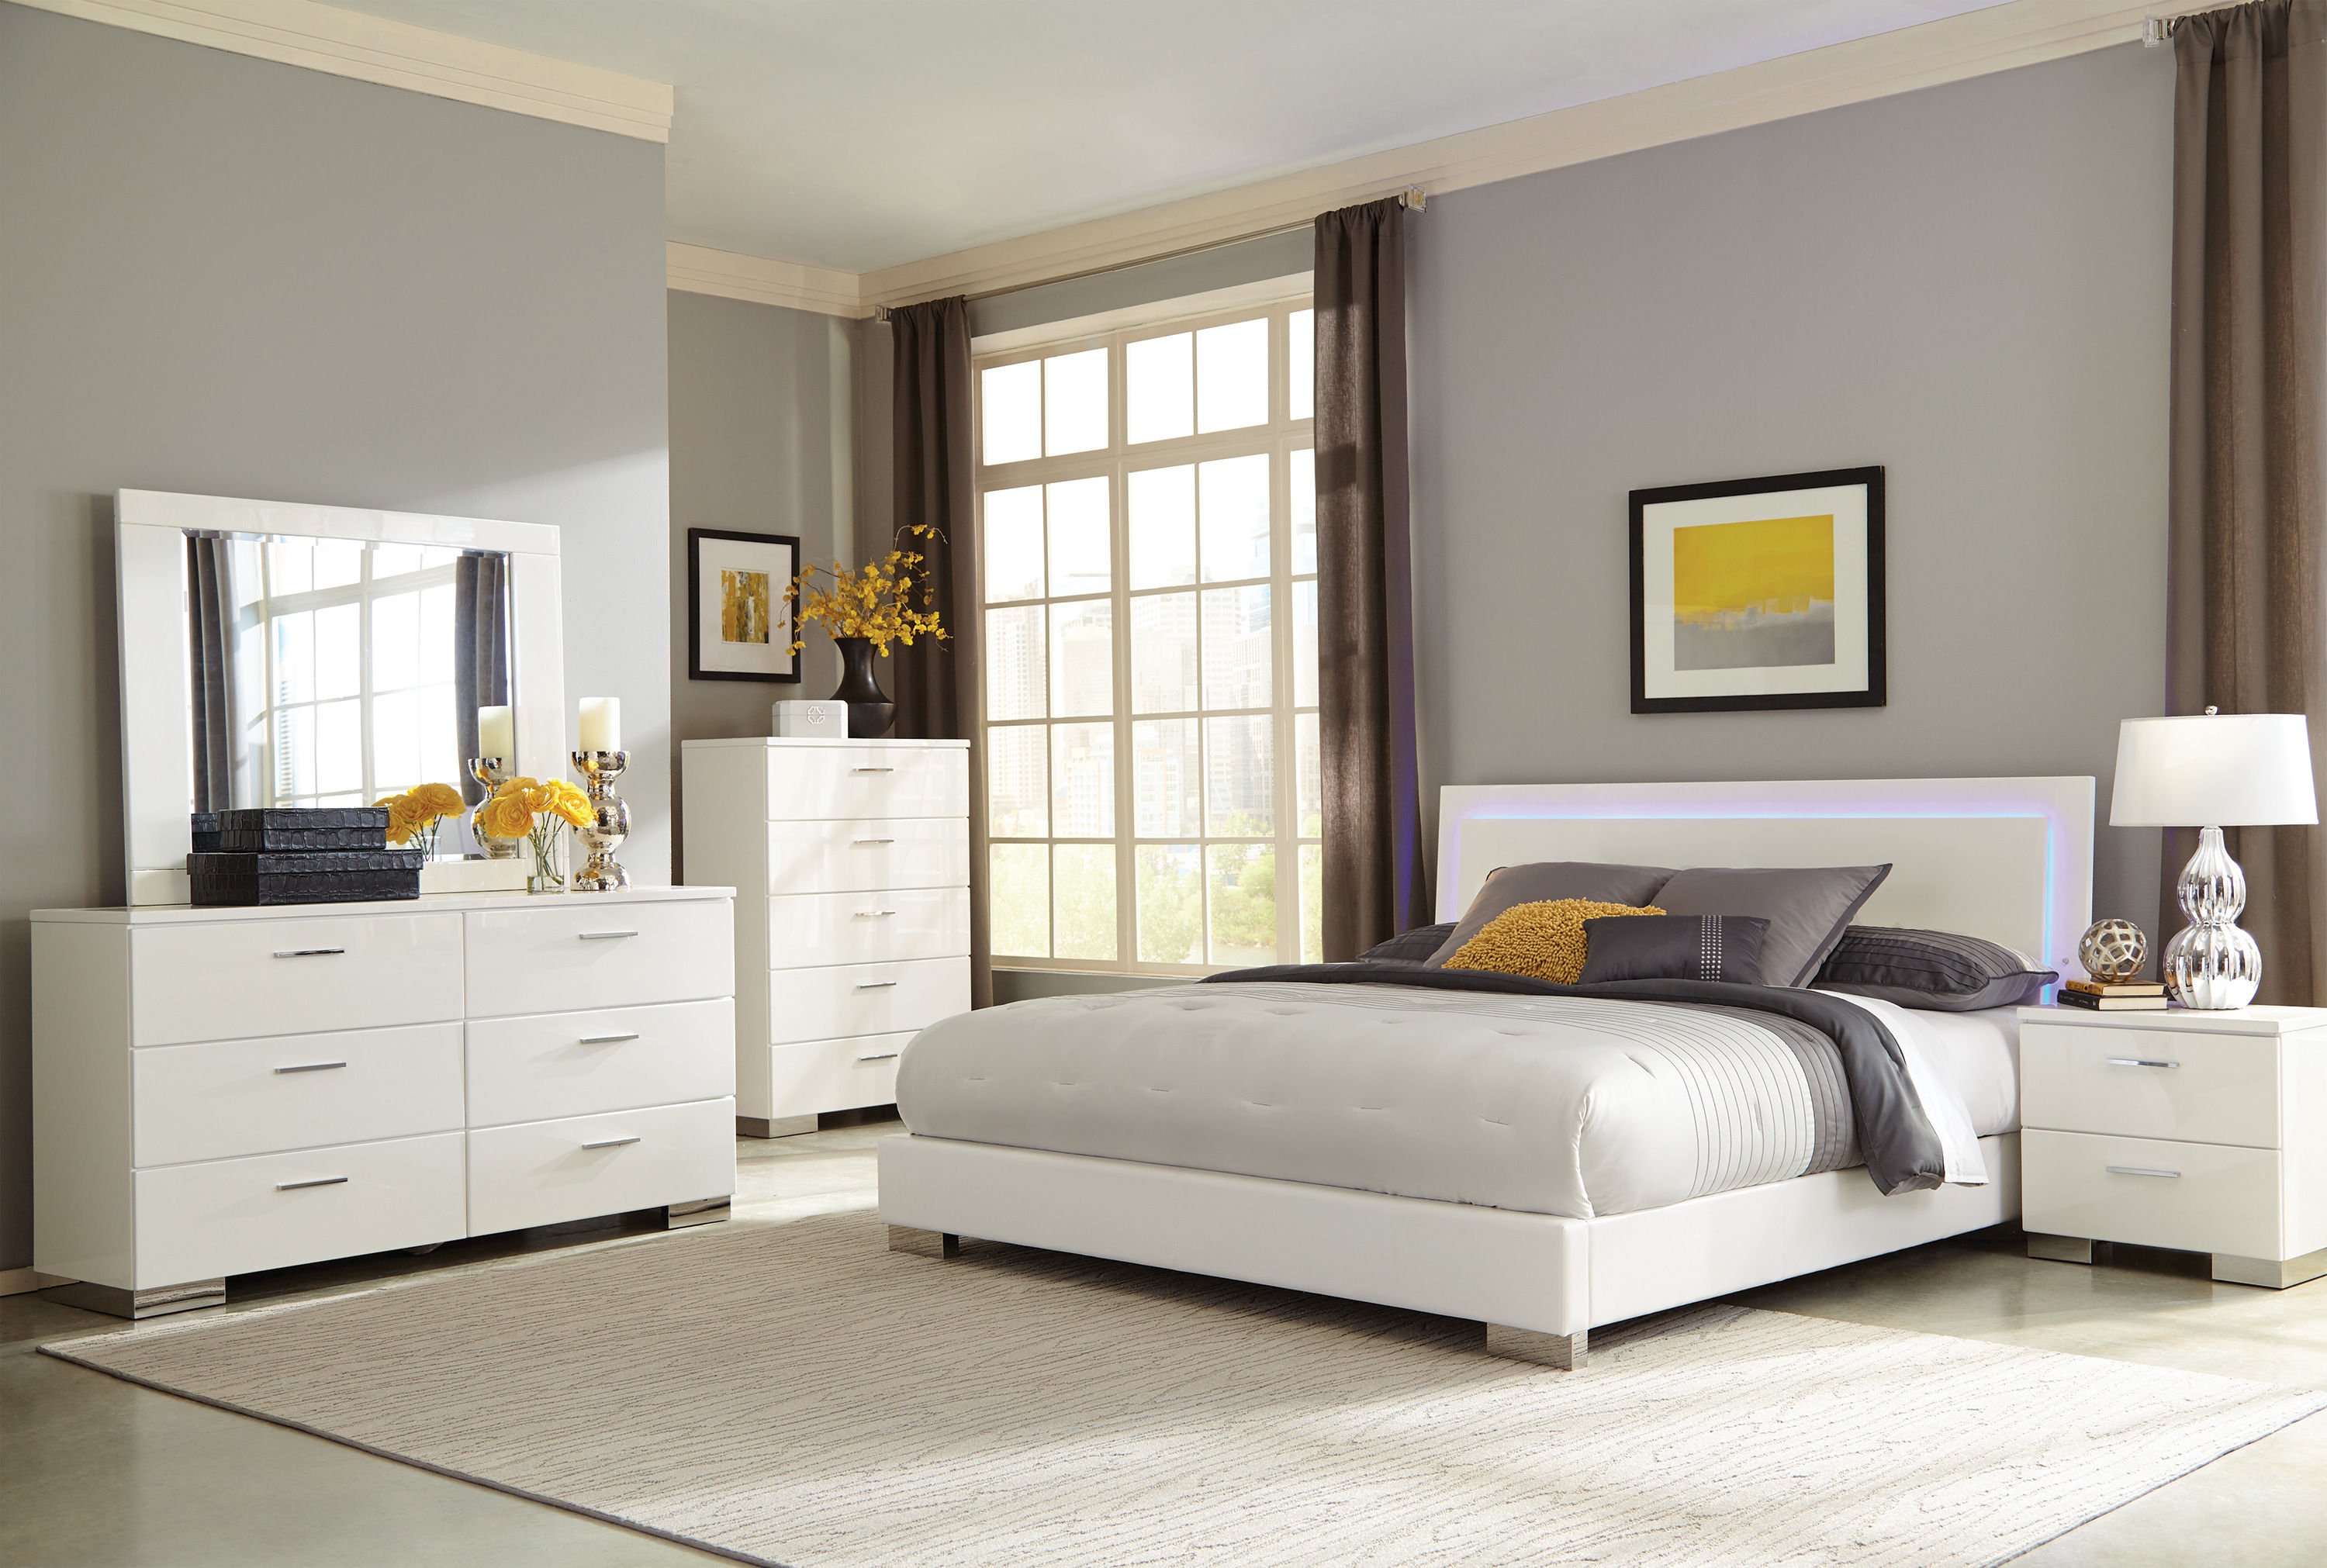 Felicity Contemporary Glossy White Wood 2pc Bedroom Set W/Queen ...